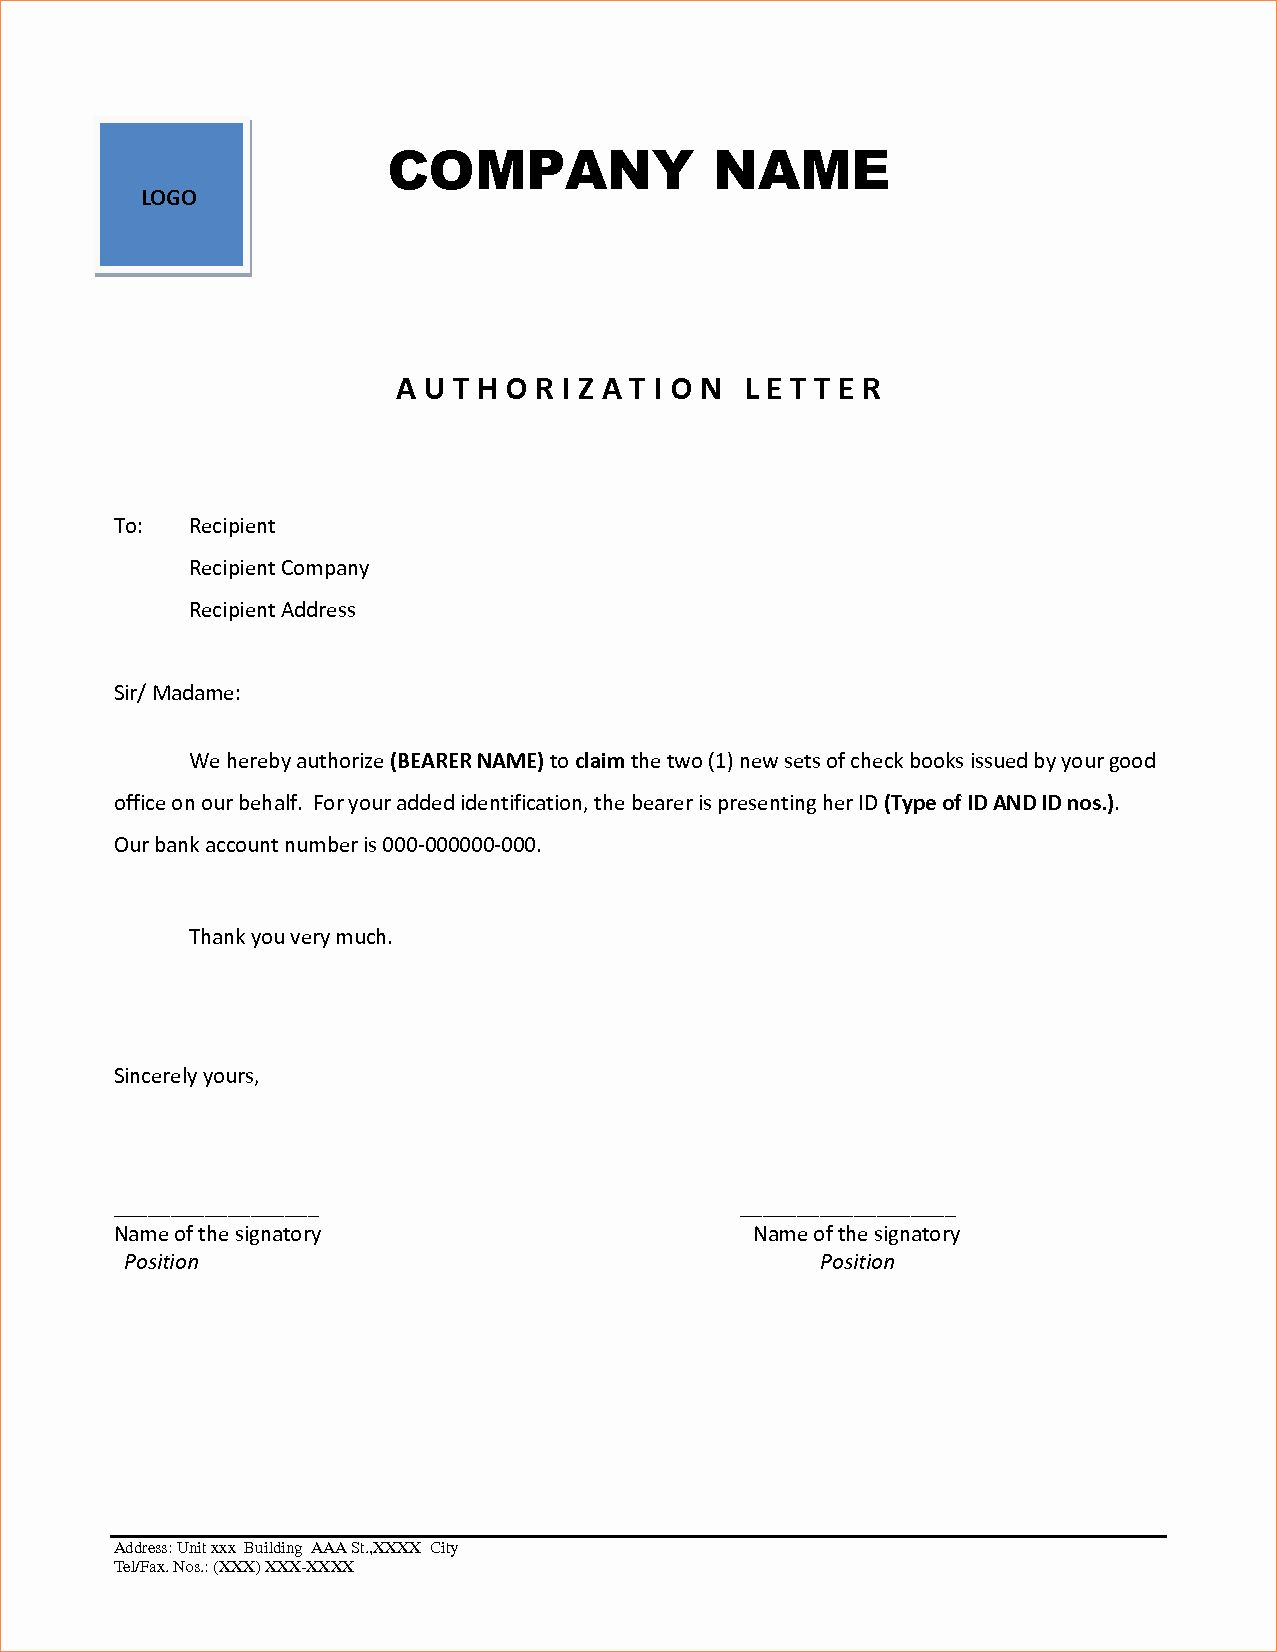 Logo Release form Template Luxury 8 Authorization Letter